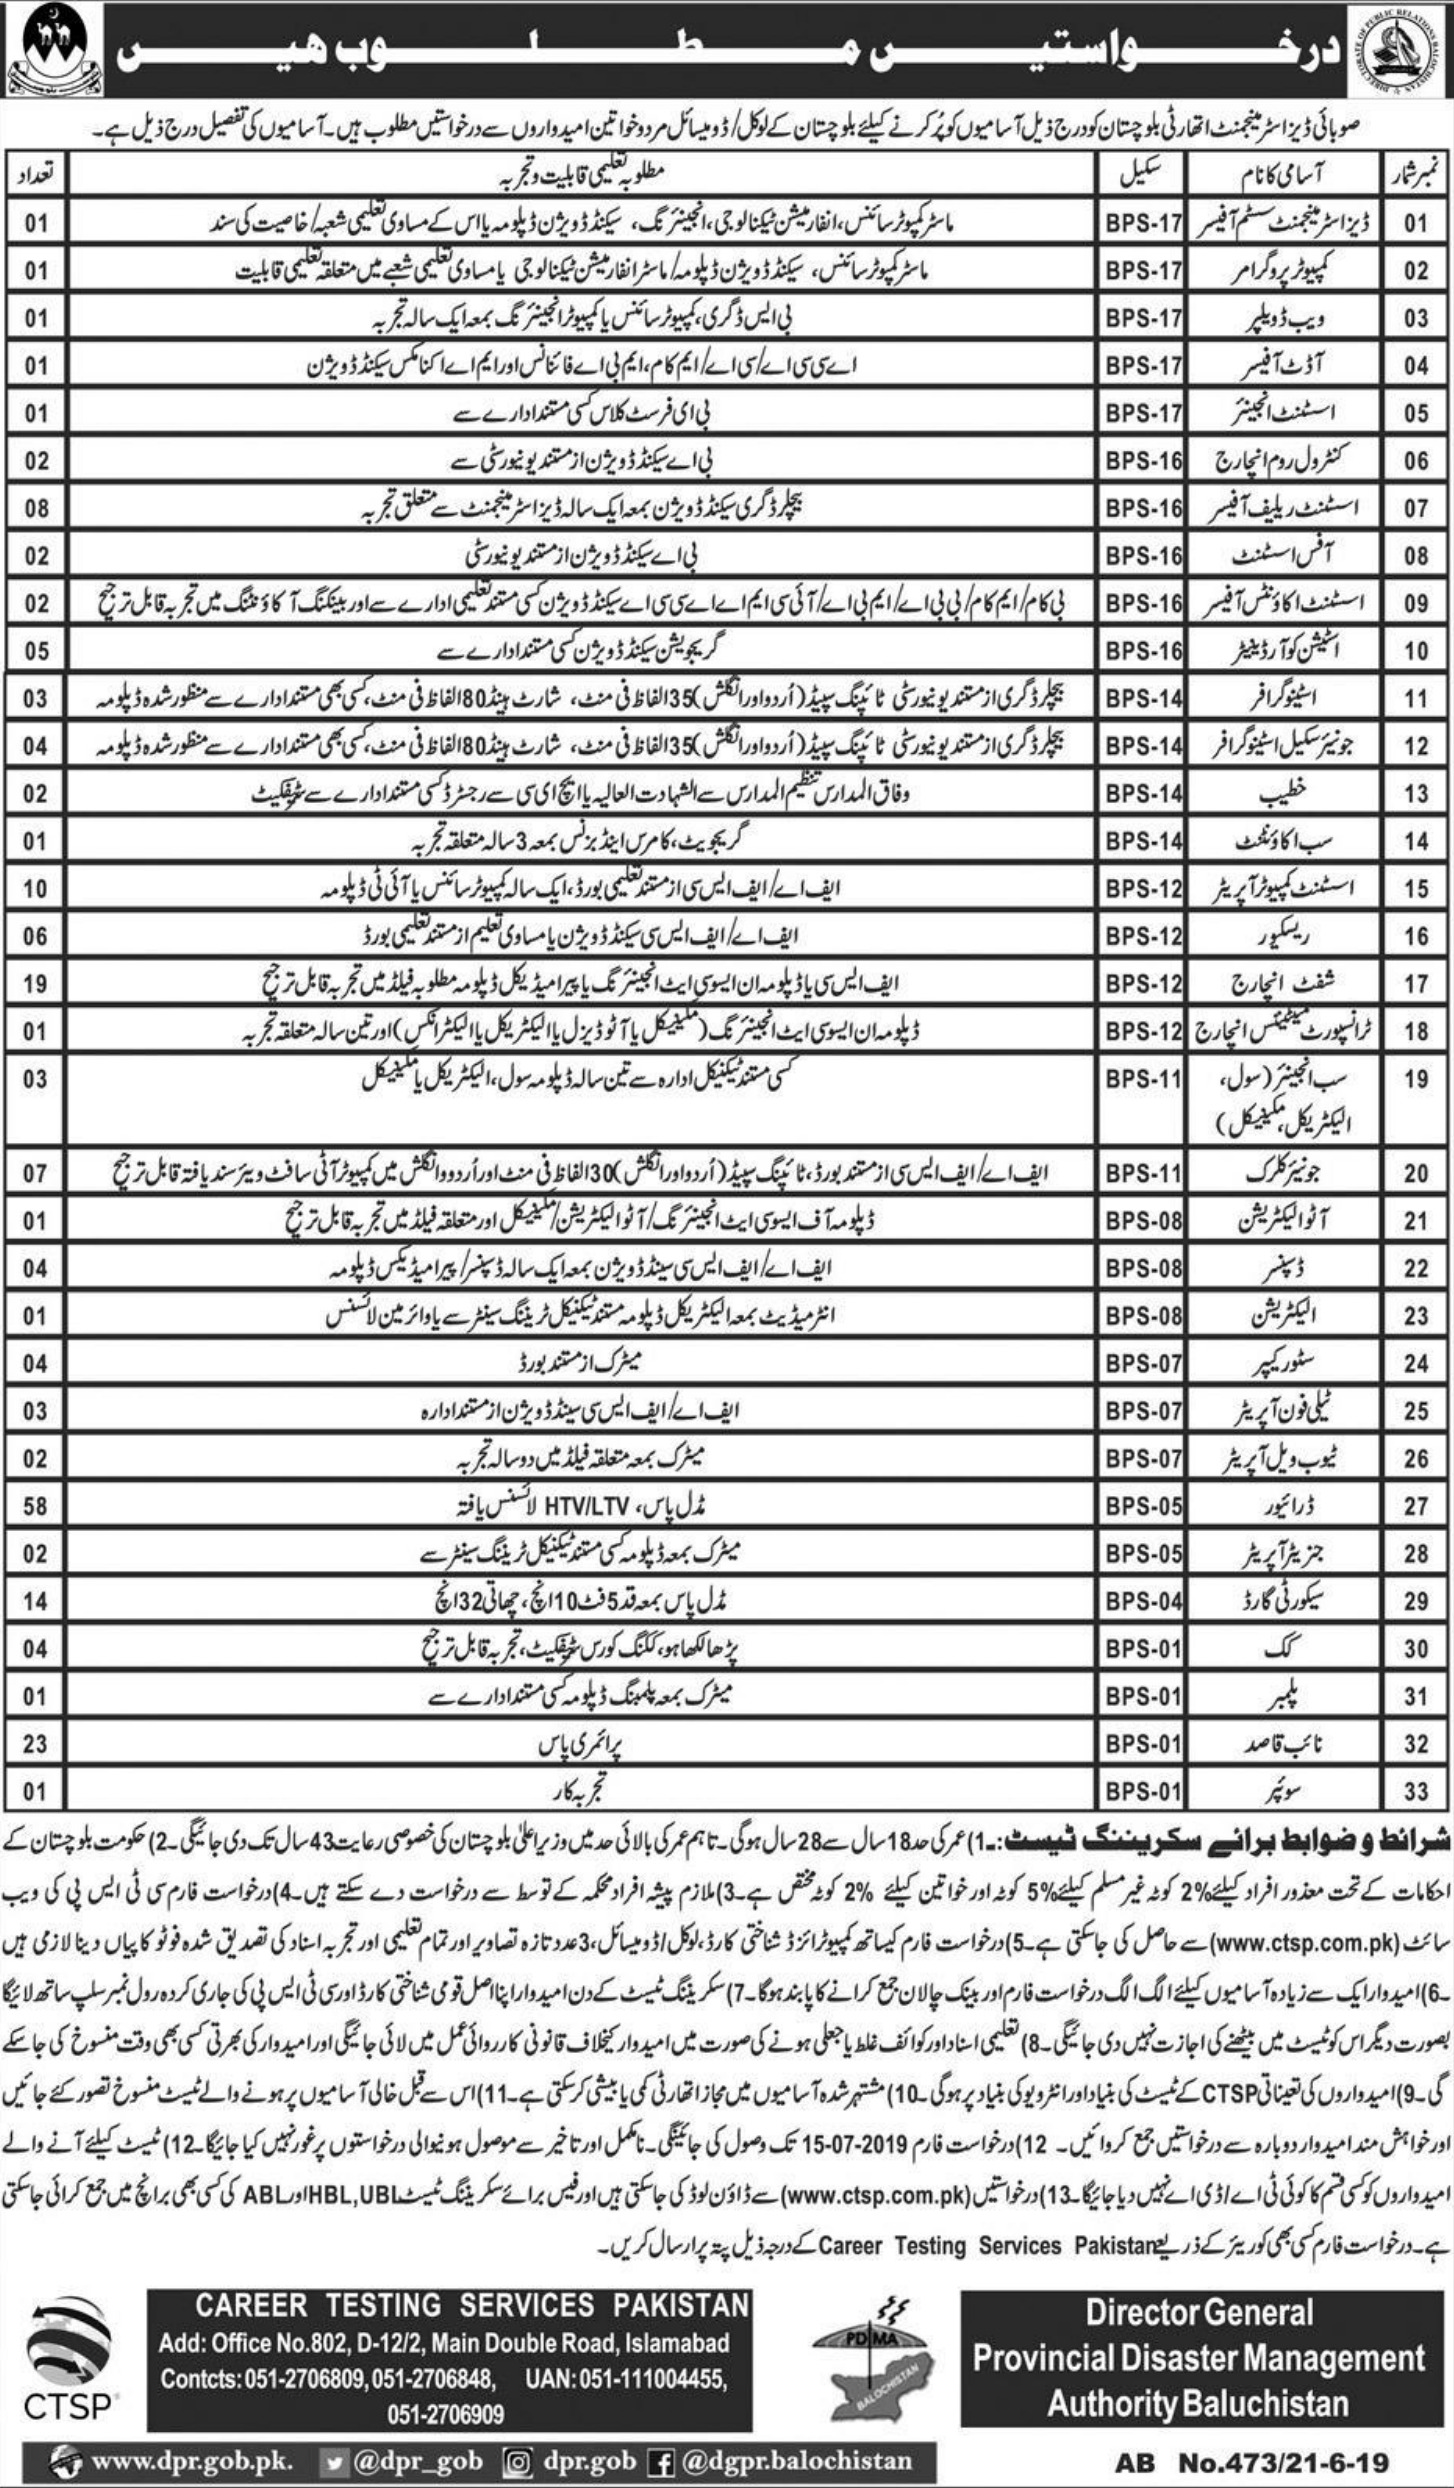 Provincial Disaster Management Authority Balochistan Jobs 2019 Through CTSP